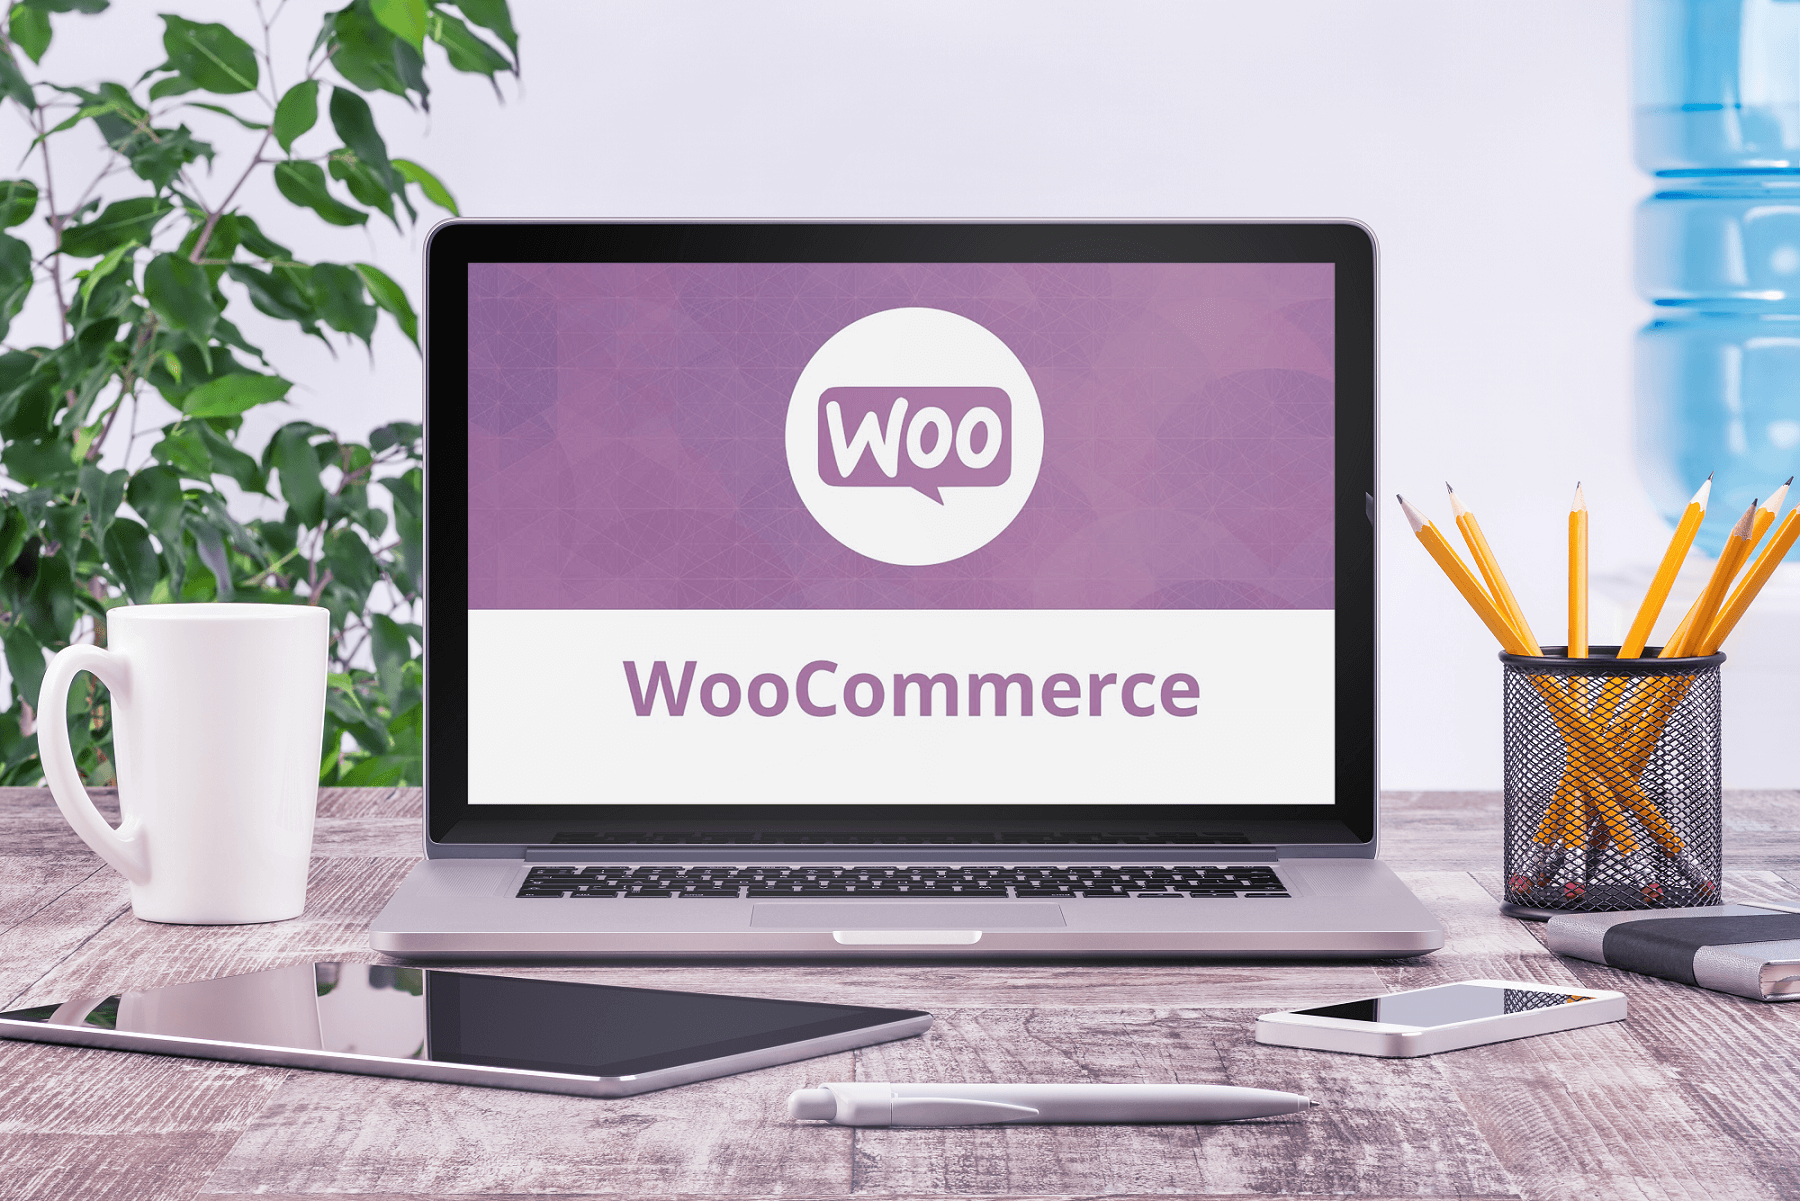 Why Woocommerce for Ecommerce?